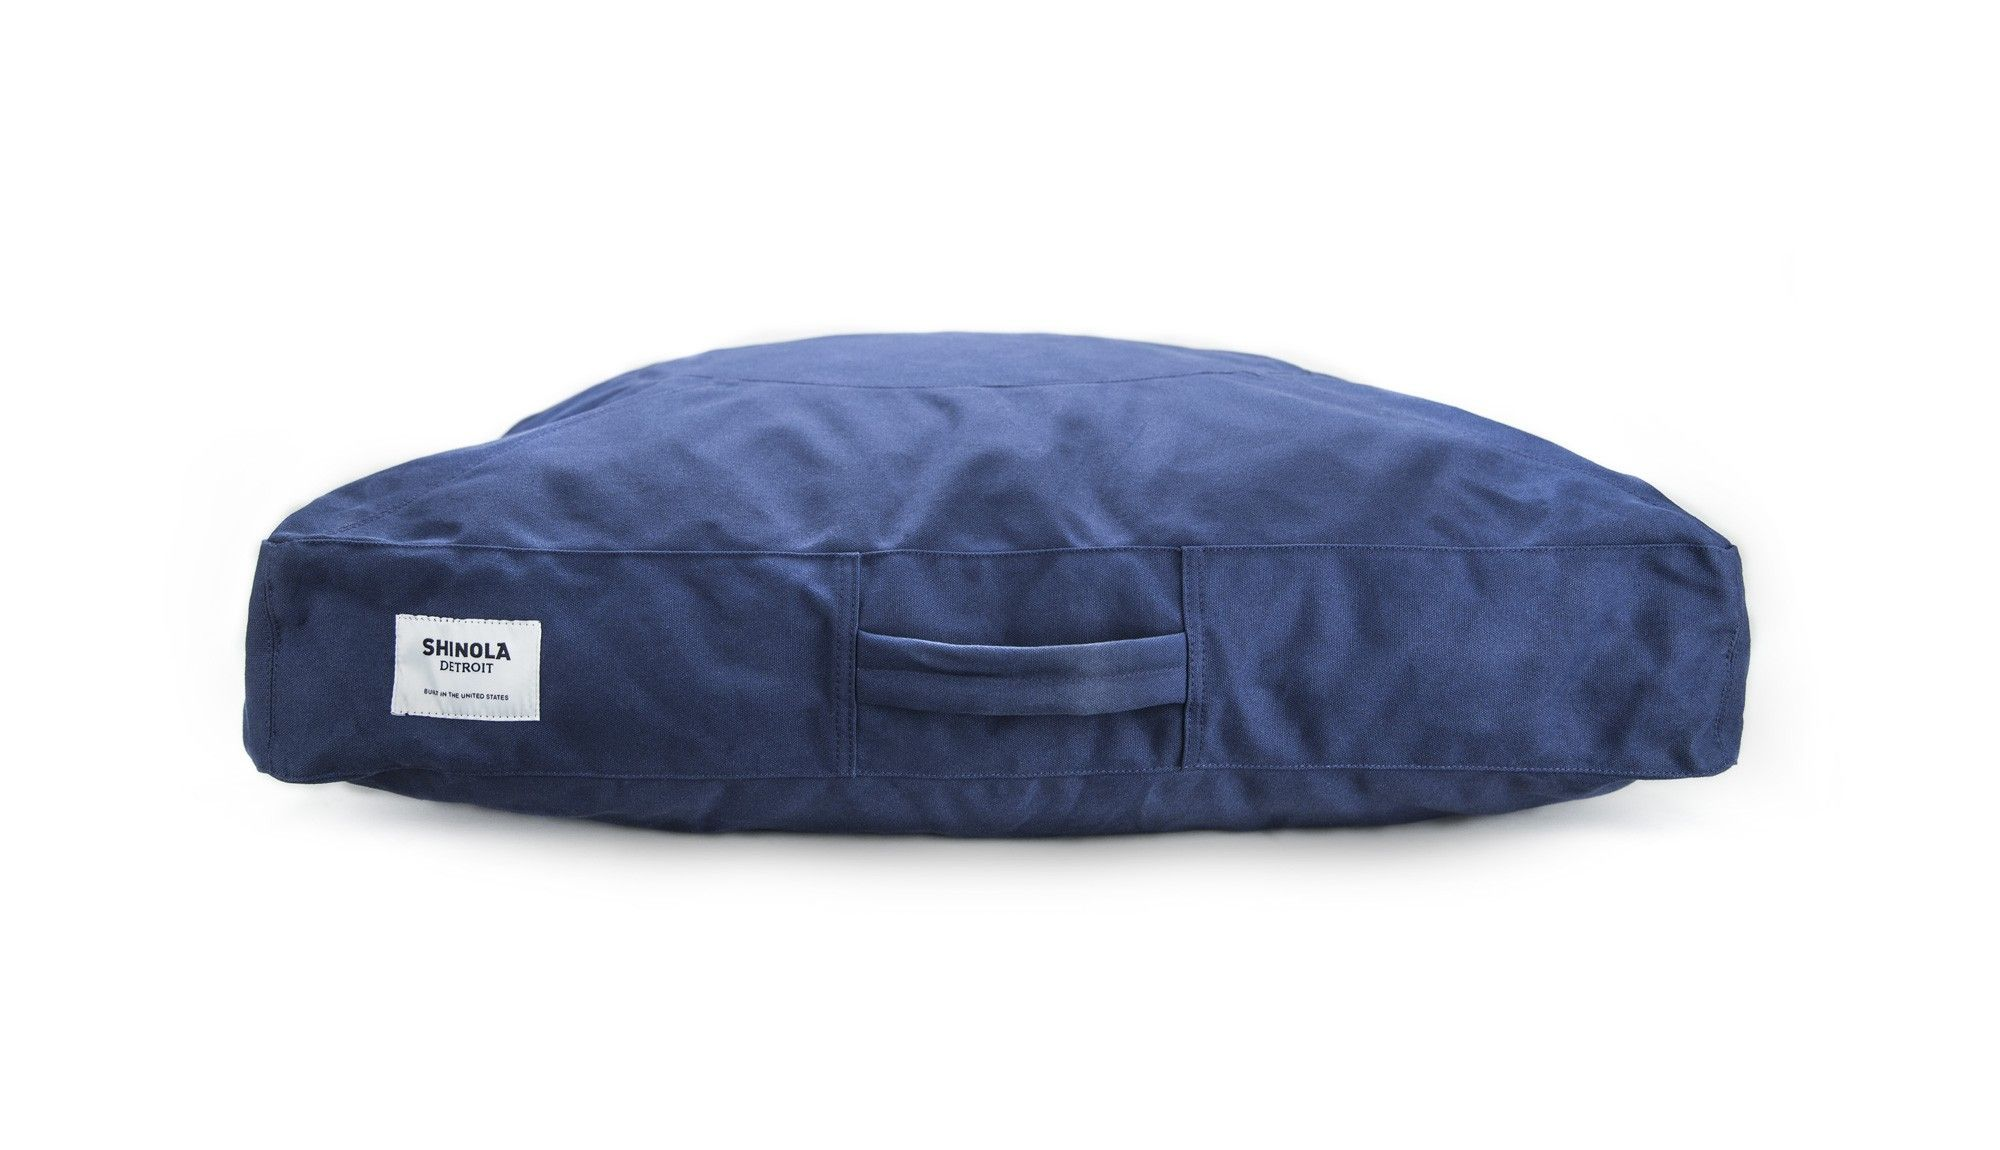 Shinola x Filson dog bed (Made in the USA) Bed is filled